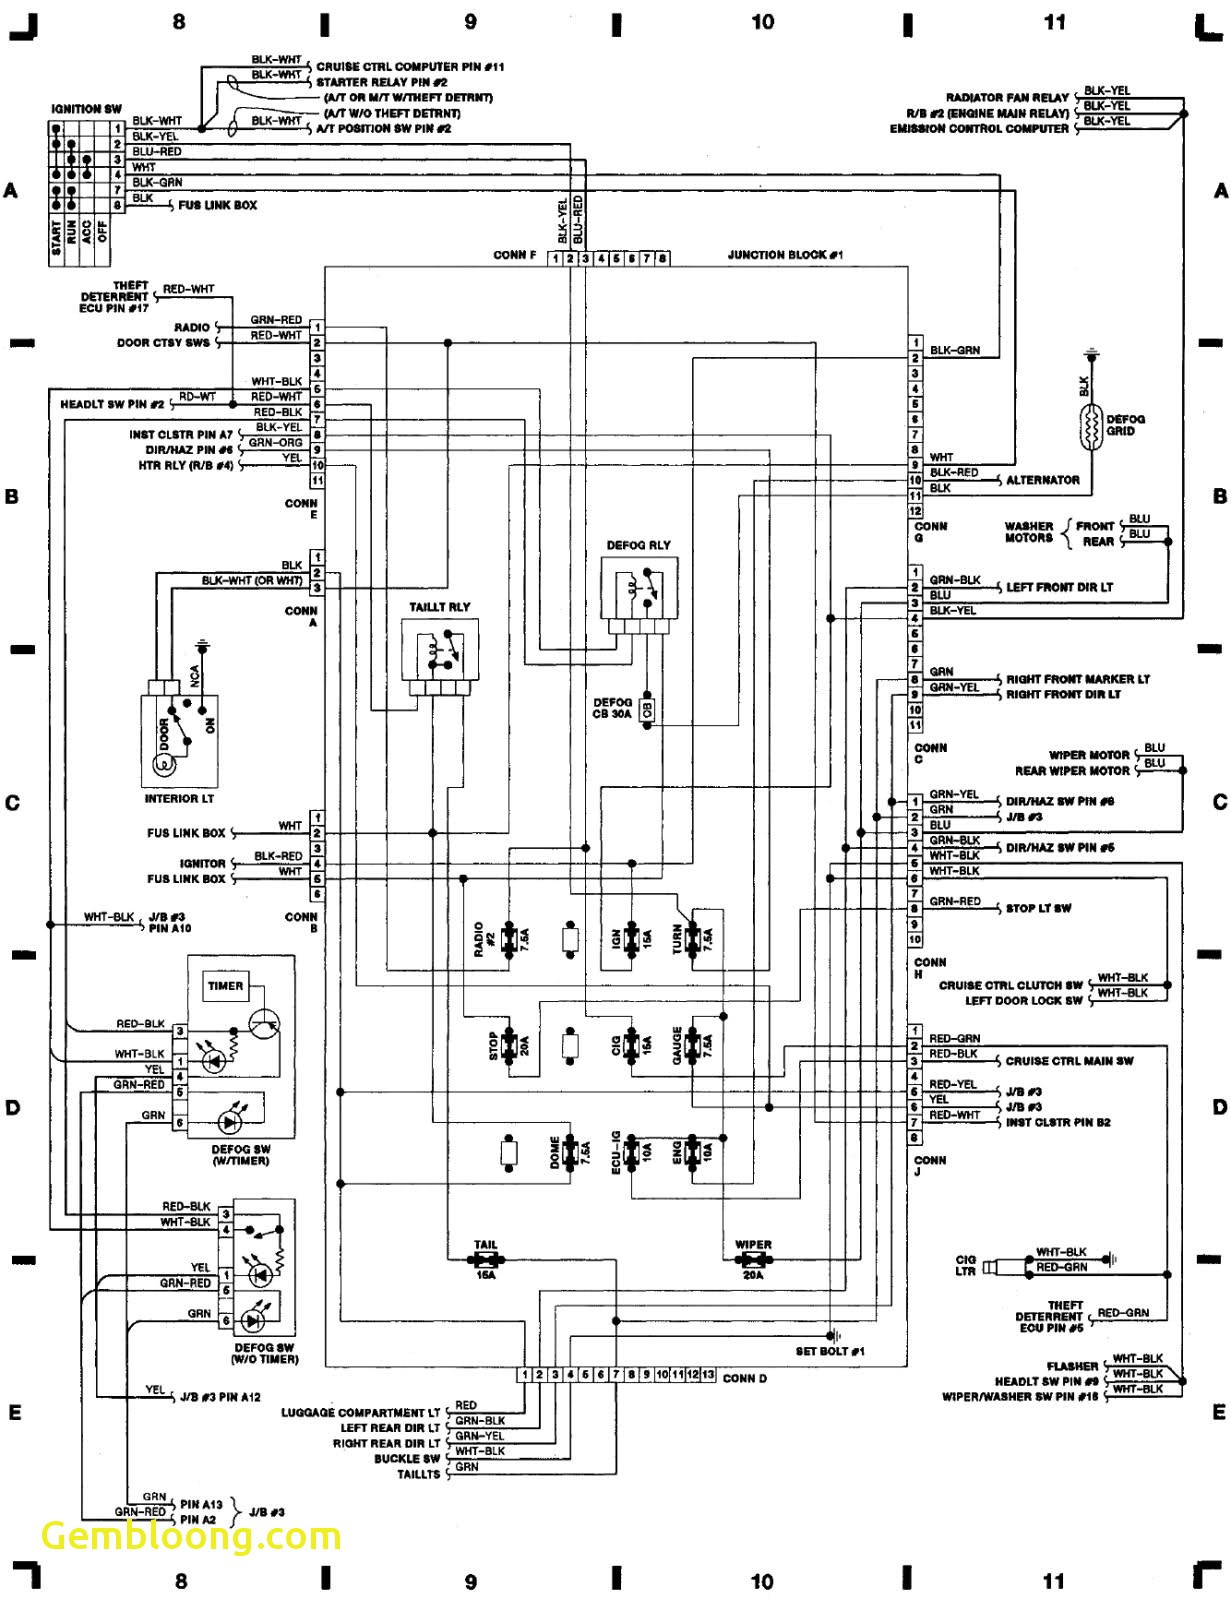 94 toyota Corolla Engine Diagram 1979 toyota Corolla Engine Diagram Wiring Diagrams Konsult Of 94 toyota Corolla Engine Diagram